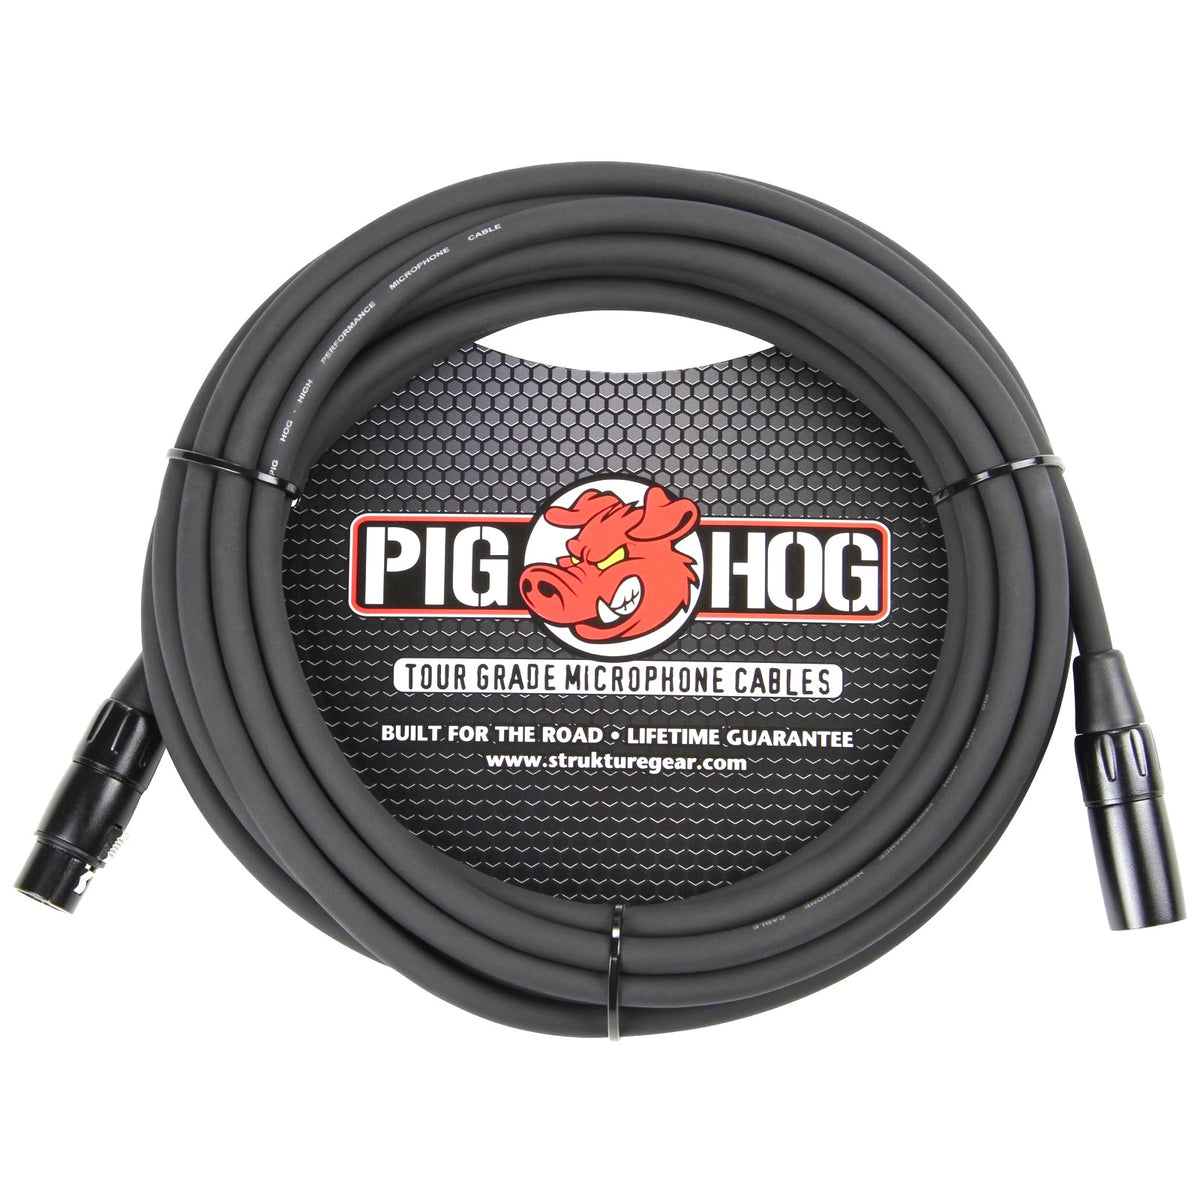 Pig Hog XLR Microphone Cable, 30'